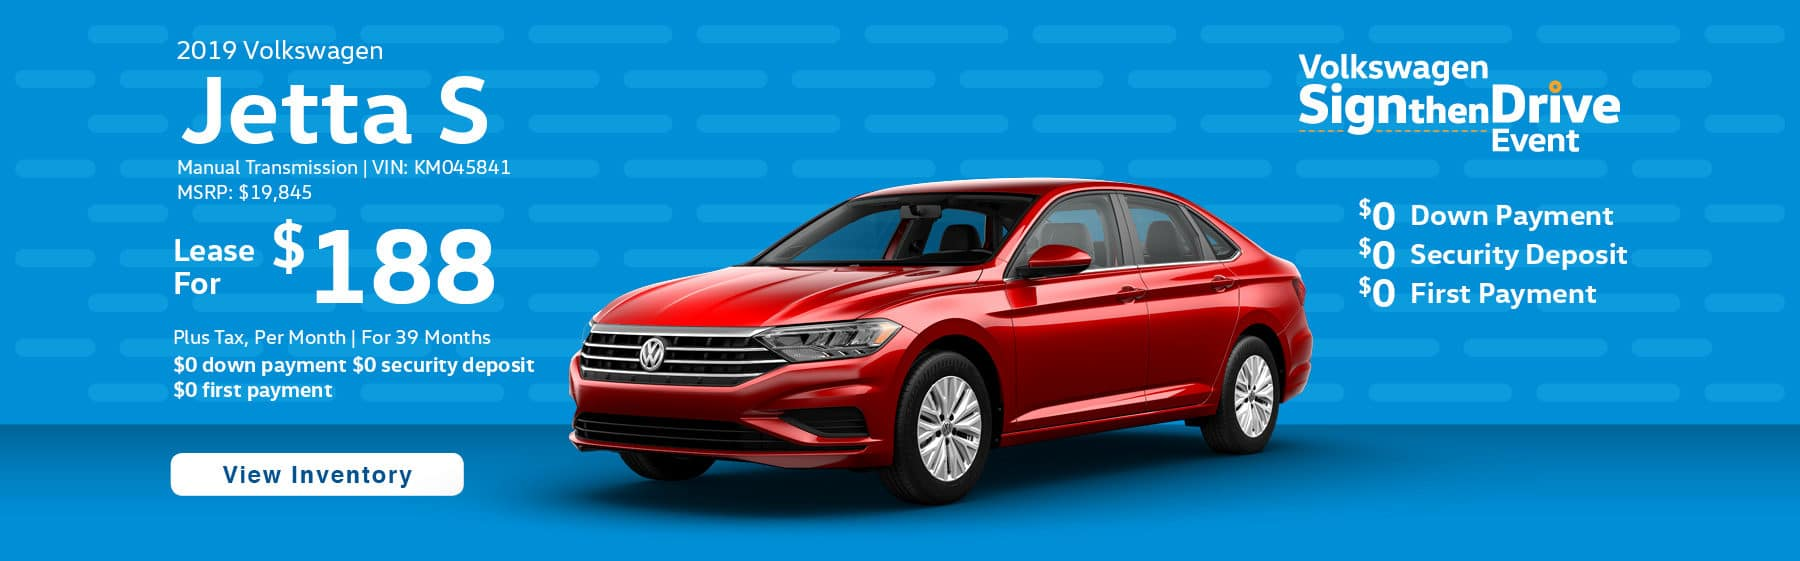 Lease the 2019 Volkswagen Jetta S for $188 plus tax for 39 months. $0 Down payment required.